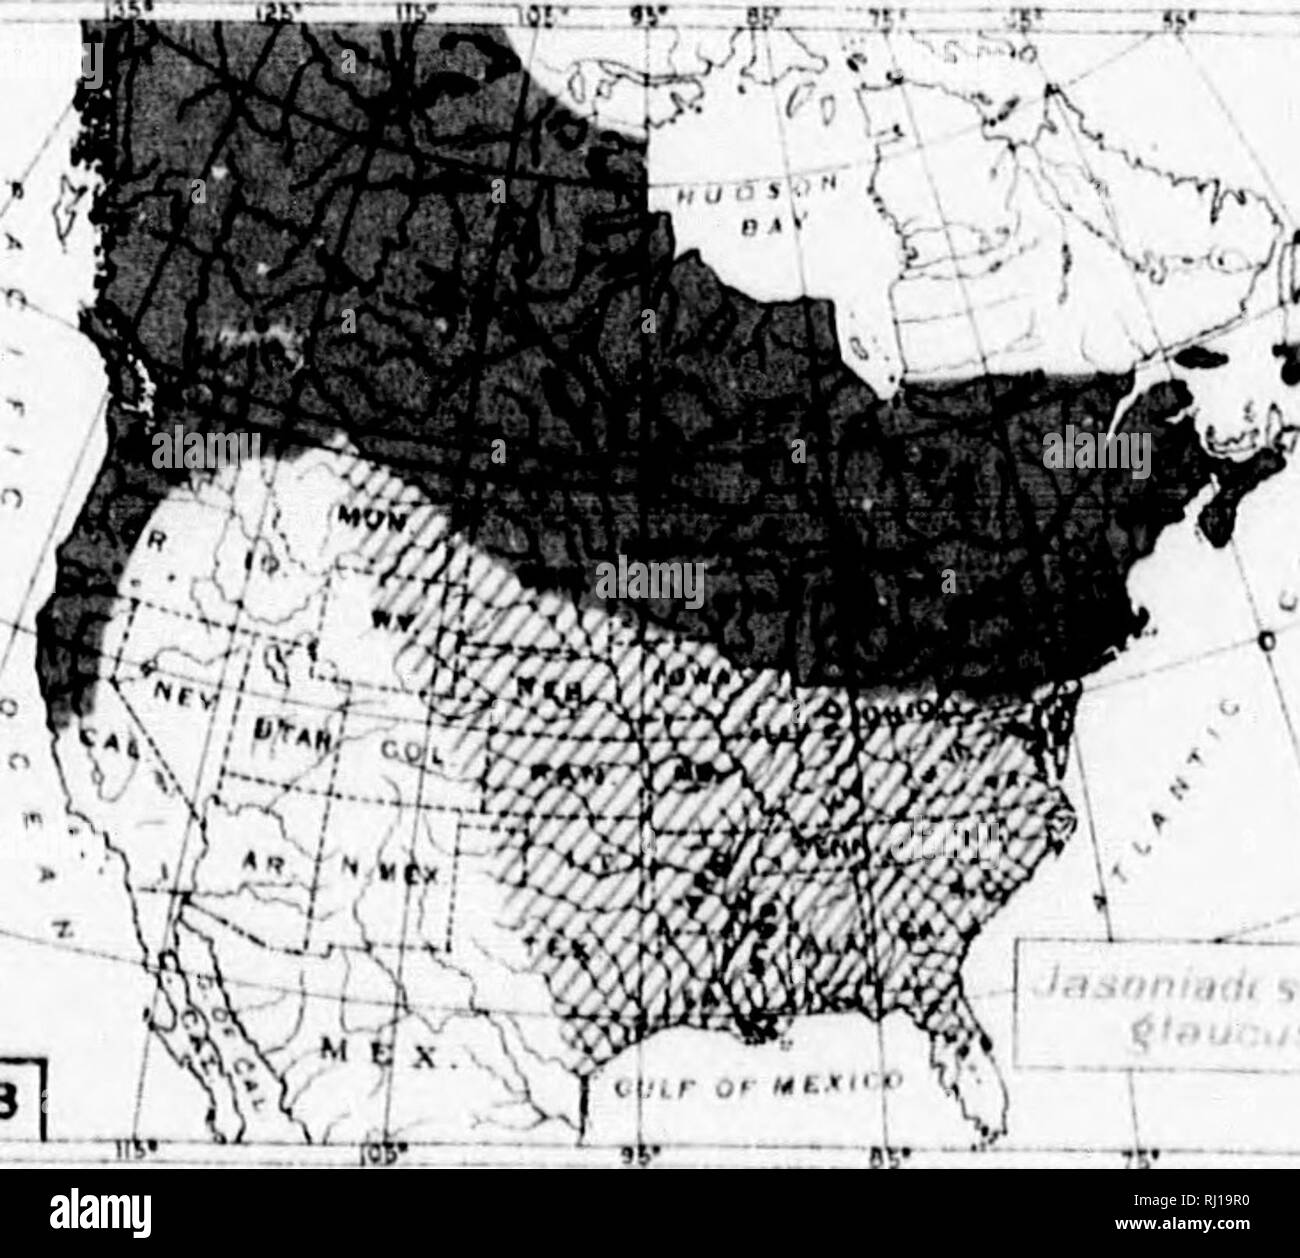 S Ib Ii Stock Photos & S Ib Ii Stock Images - Alamy Ib Black And White Map Of Usa on black and white map of asia, latitude and longitude of usa, black and white portraits of women,